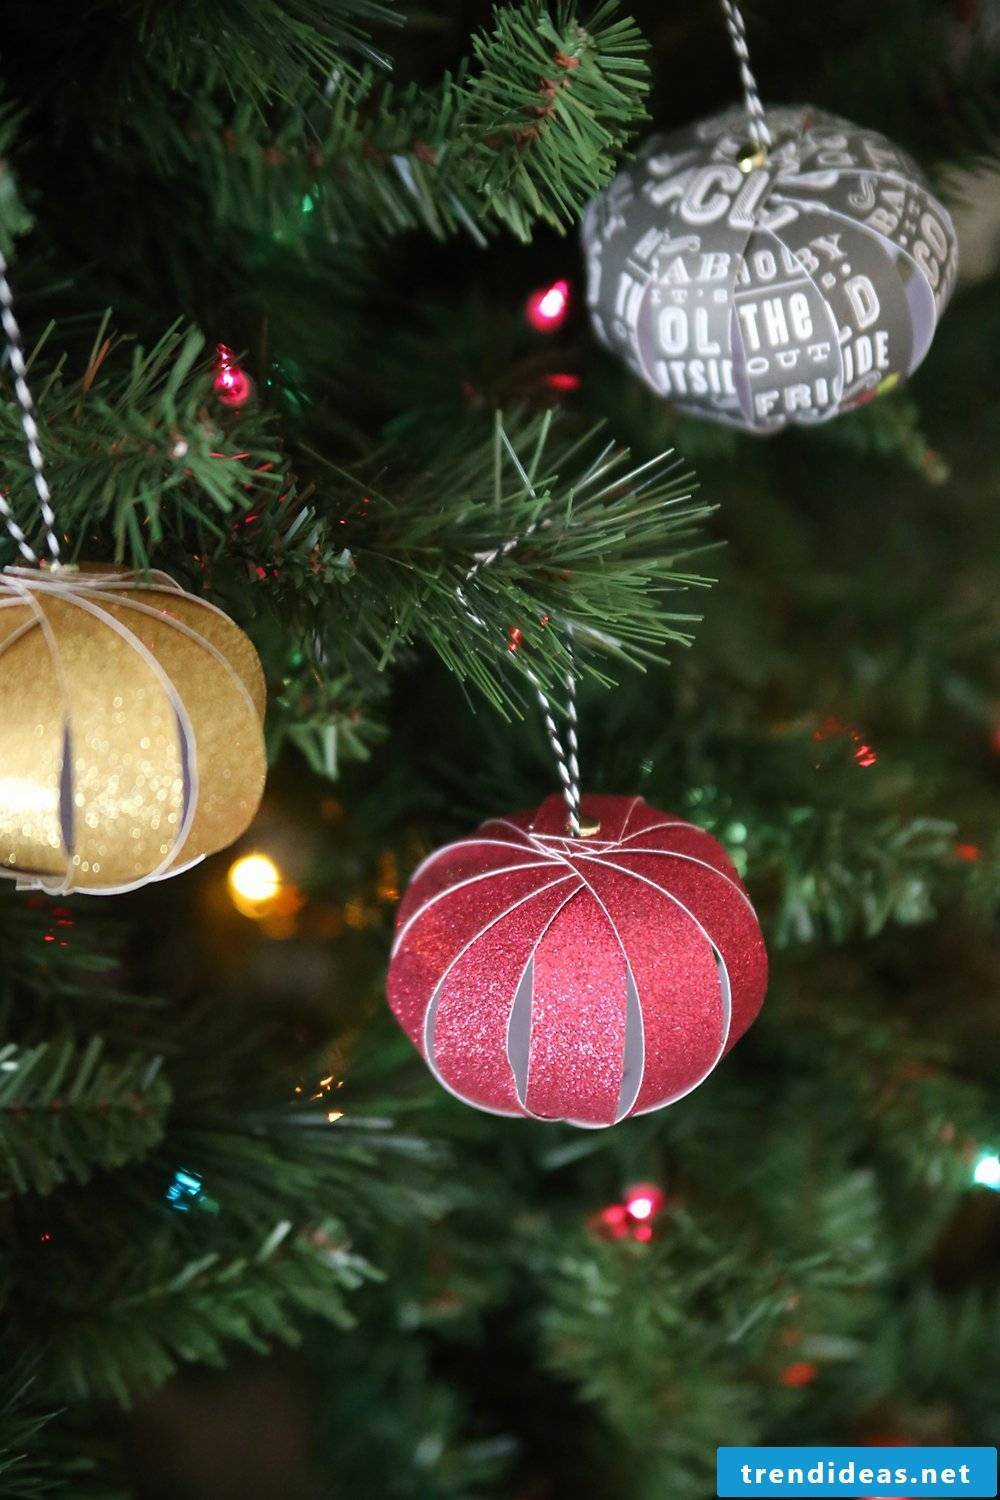 Crafting ideas for Christmas - Christmas crafts with children